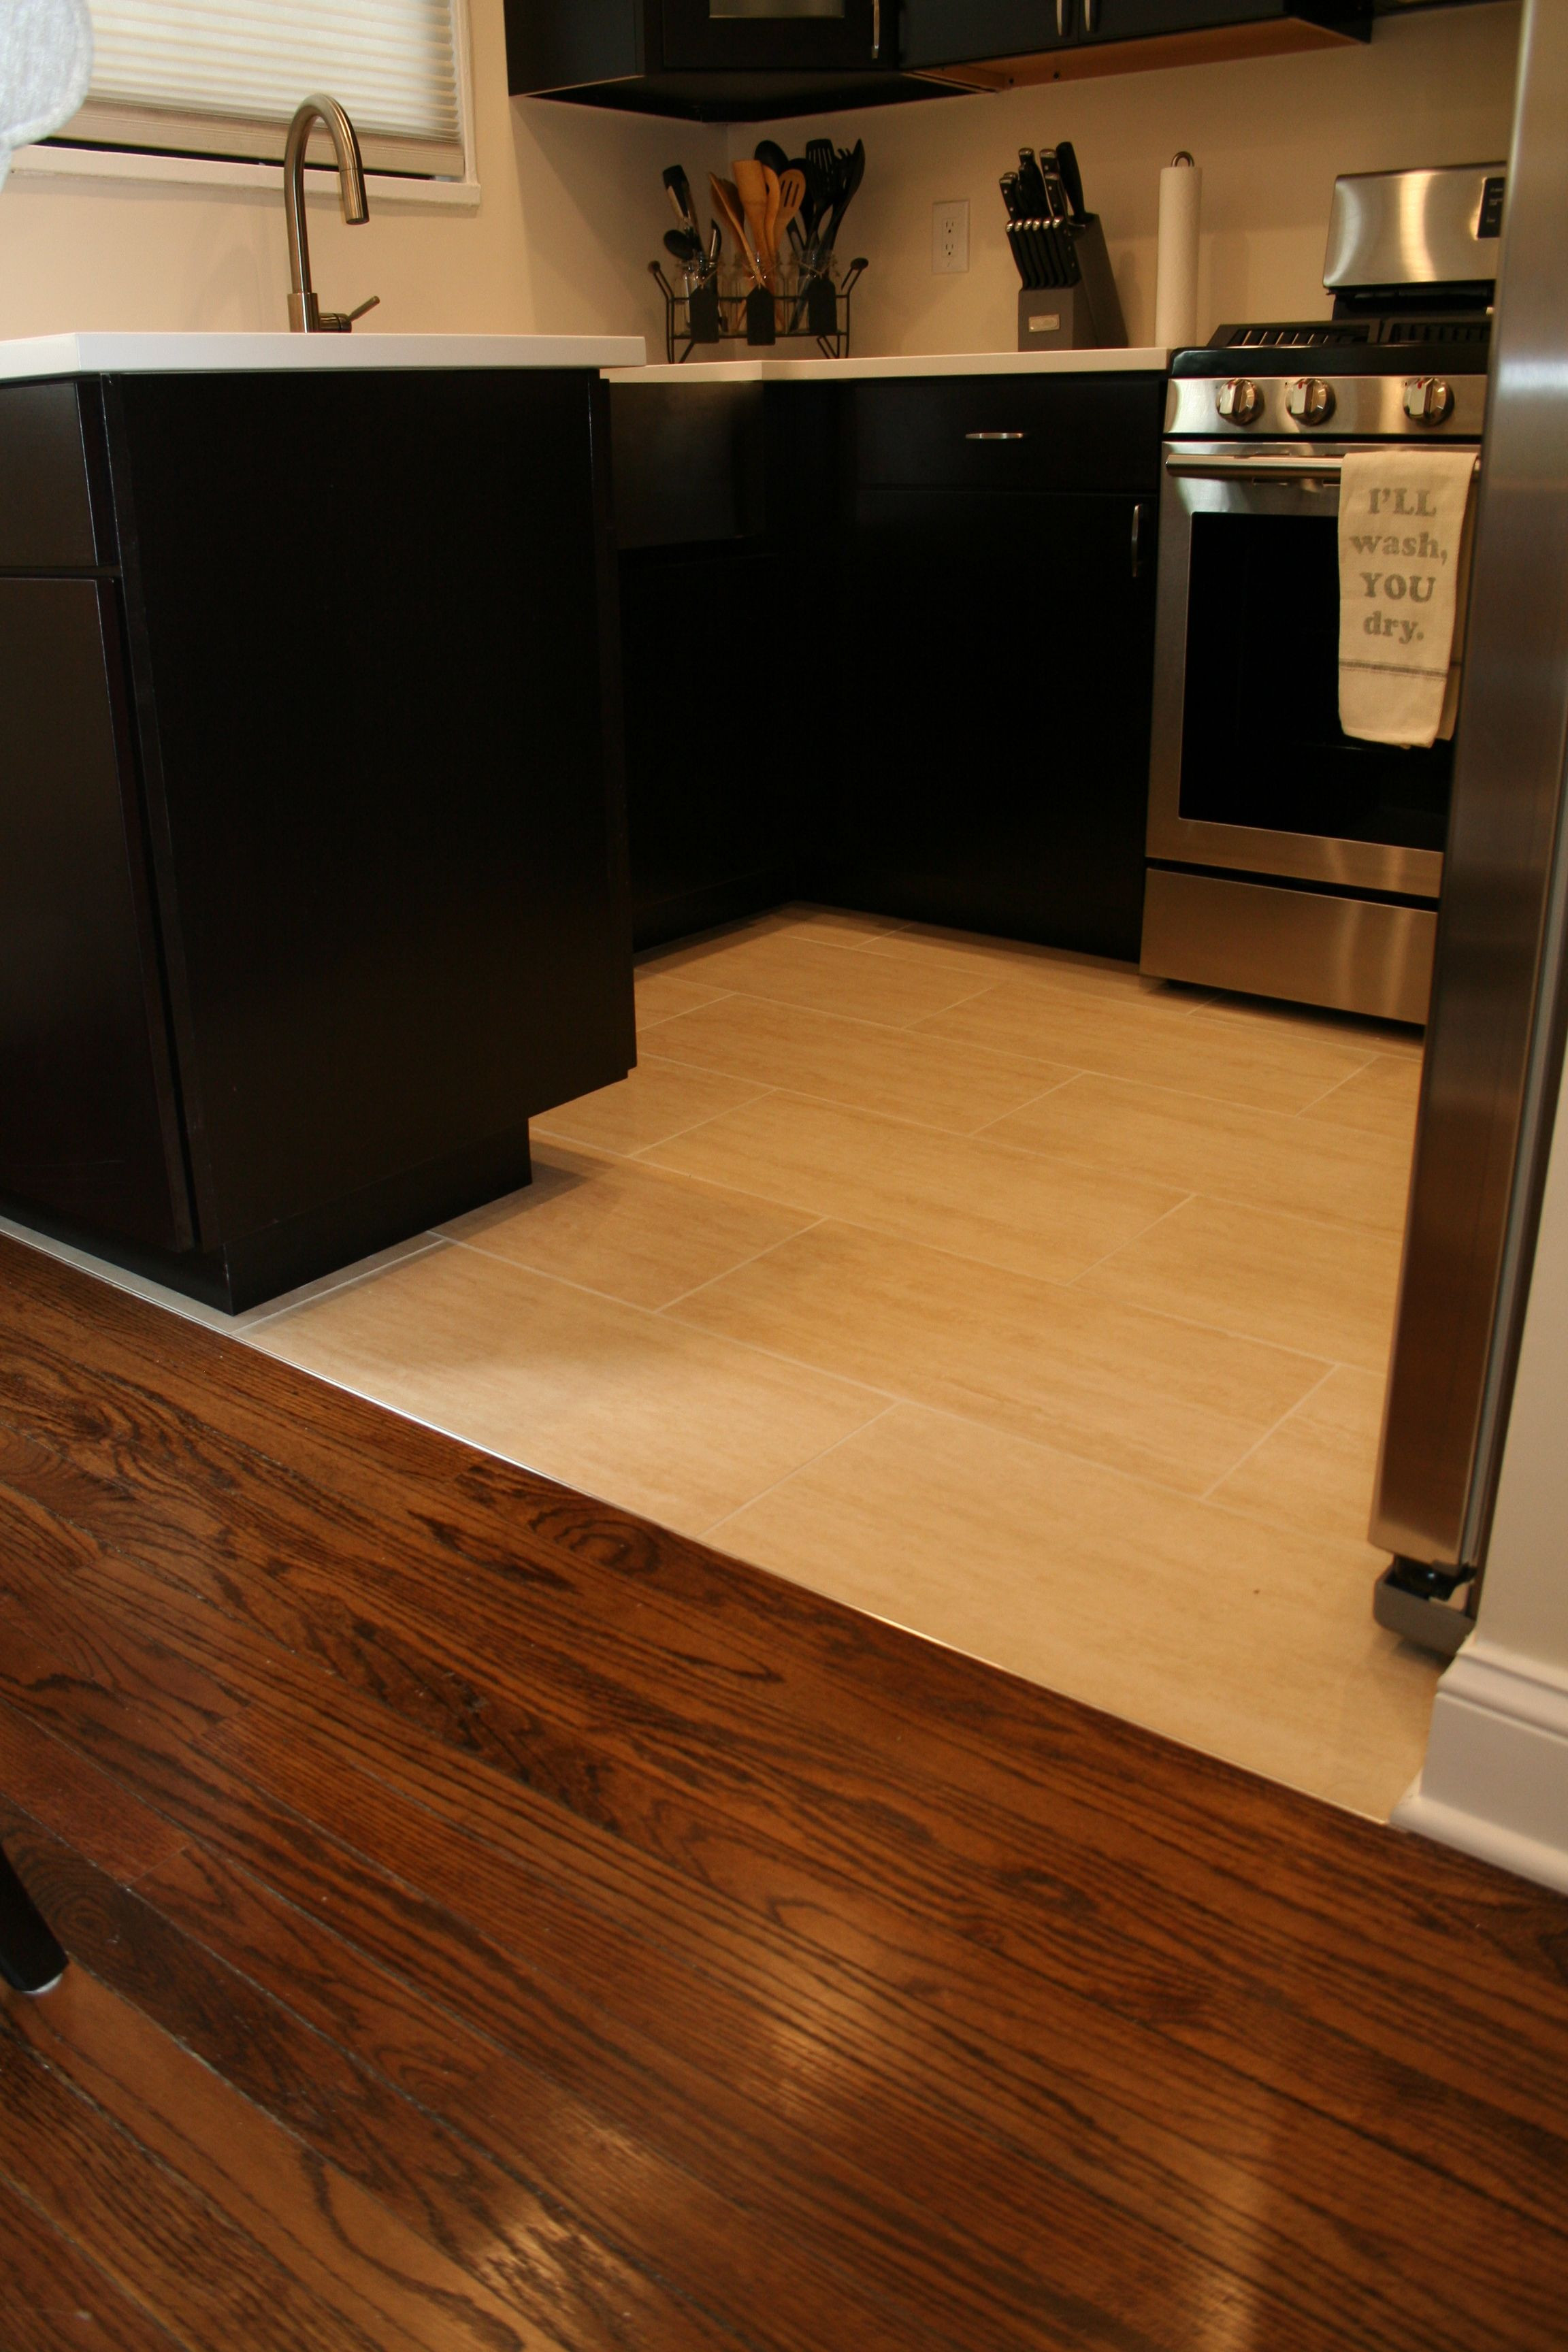 hardwood flooring ri of pin by kabinet king on our work pinterest flooring tiles and with regard to dark wood floors beautiful dark wood floors love the dark bamboo floors and pewter walls